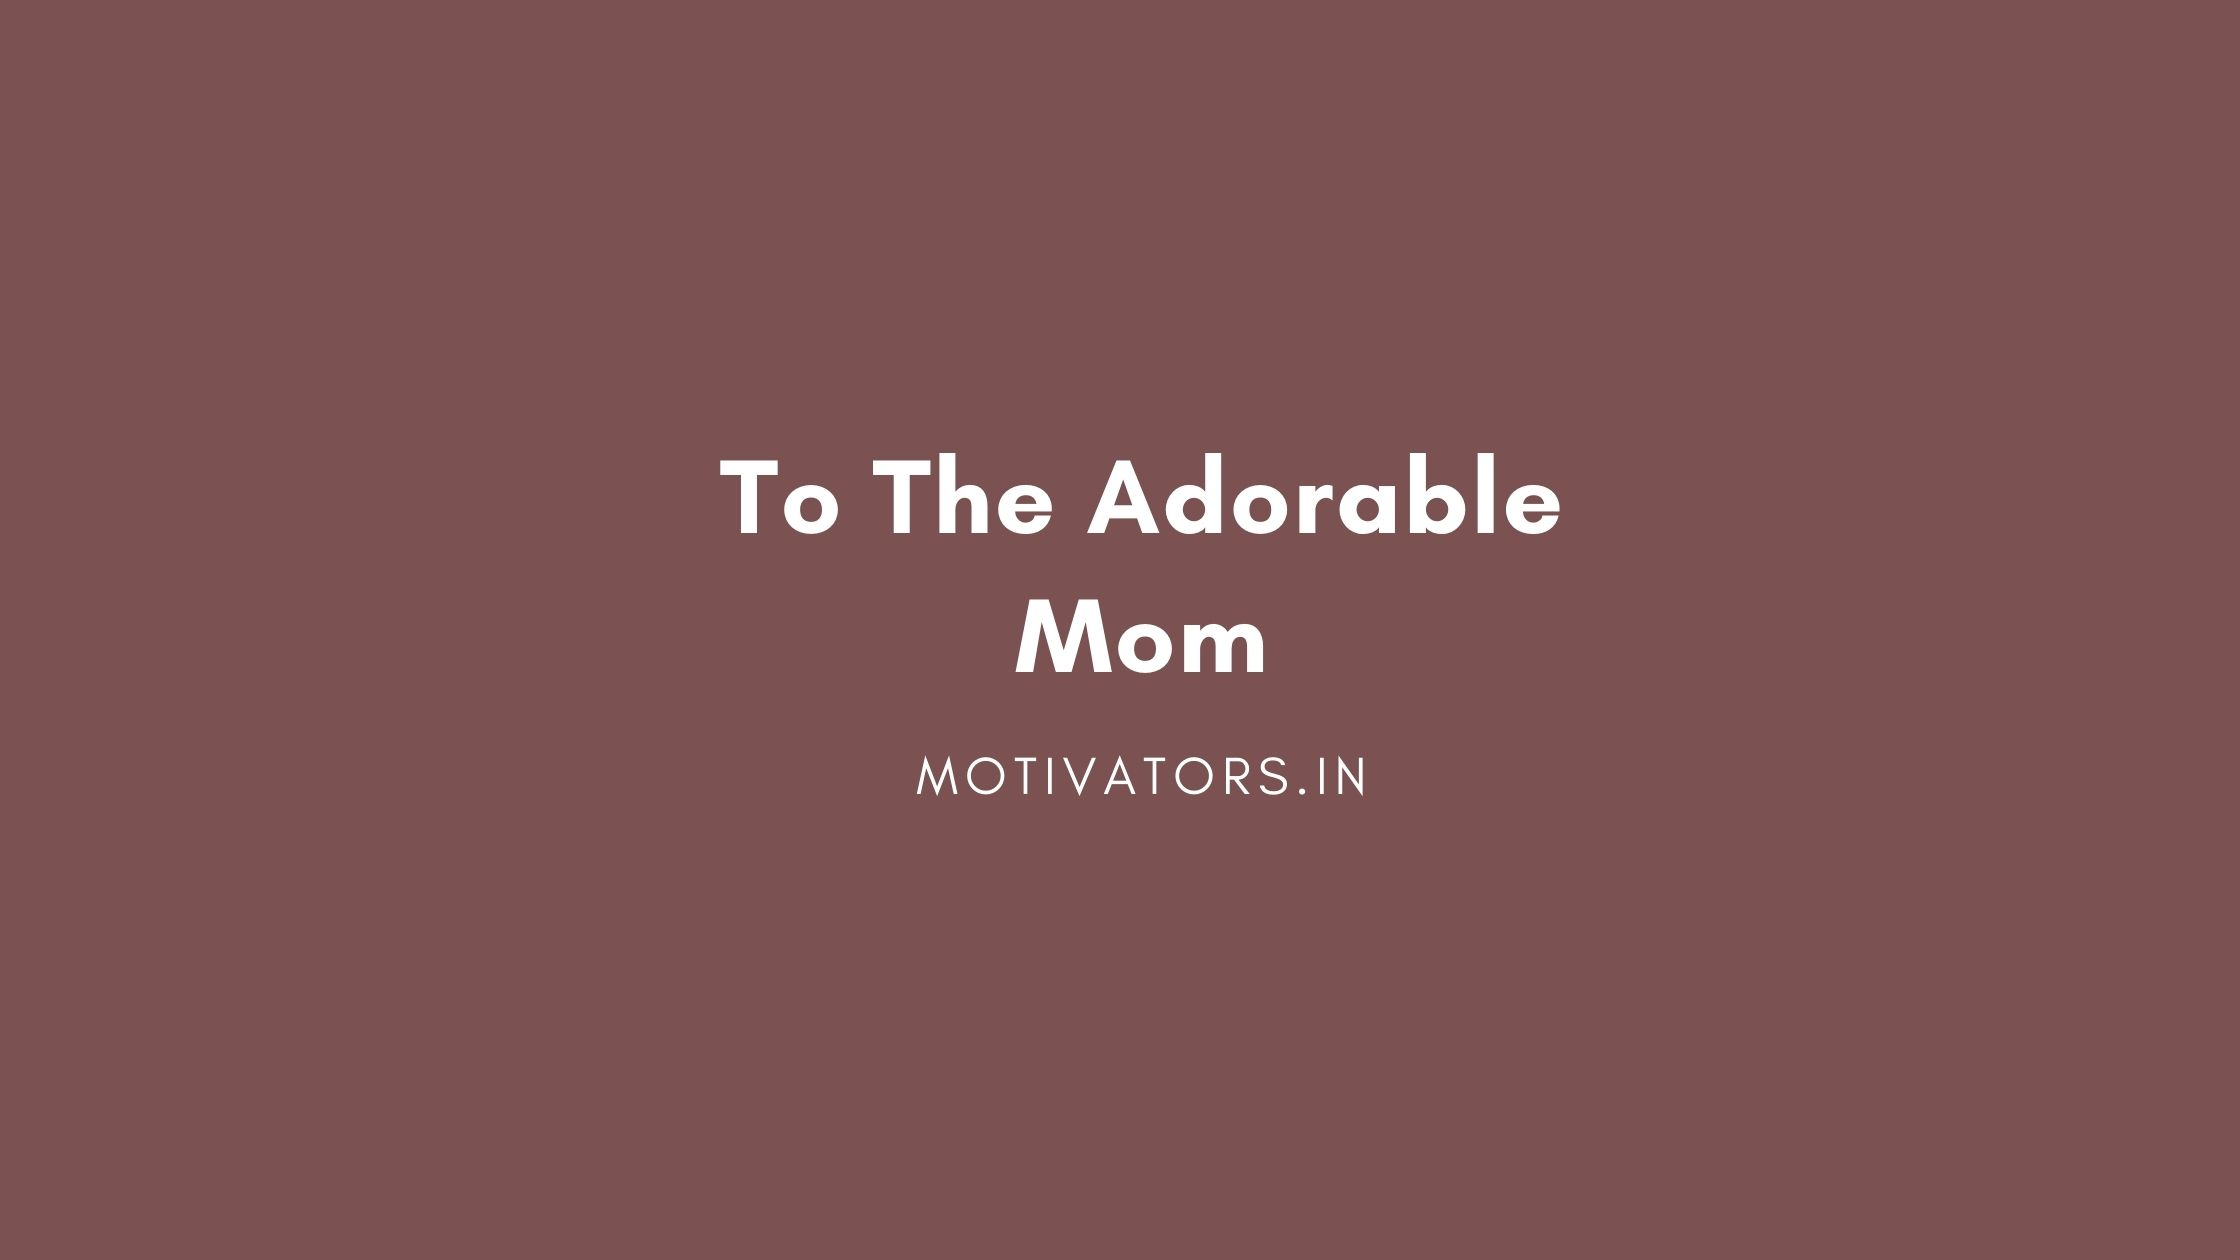 To The Adorable Mom